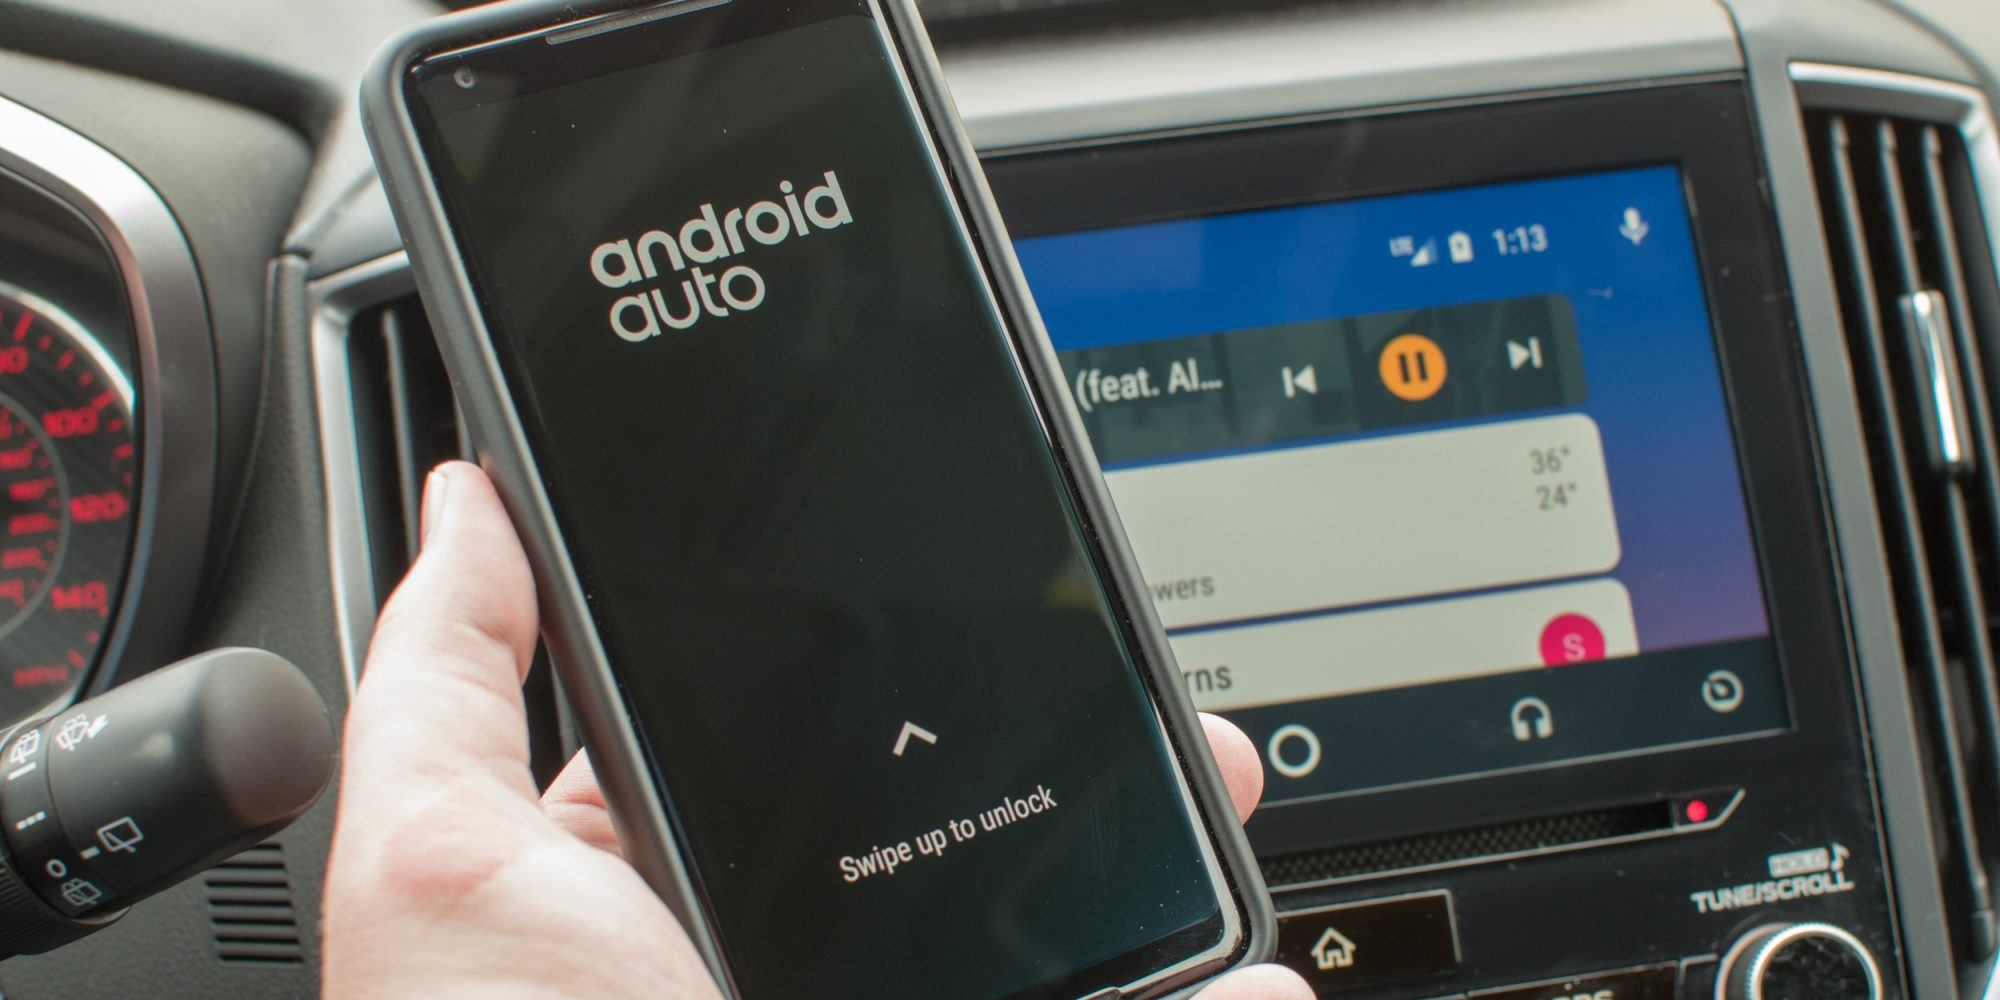 10 Things to Know About Android Auto - Connected Car Life